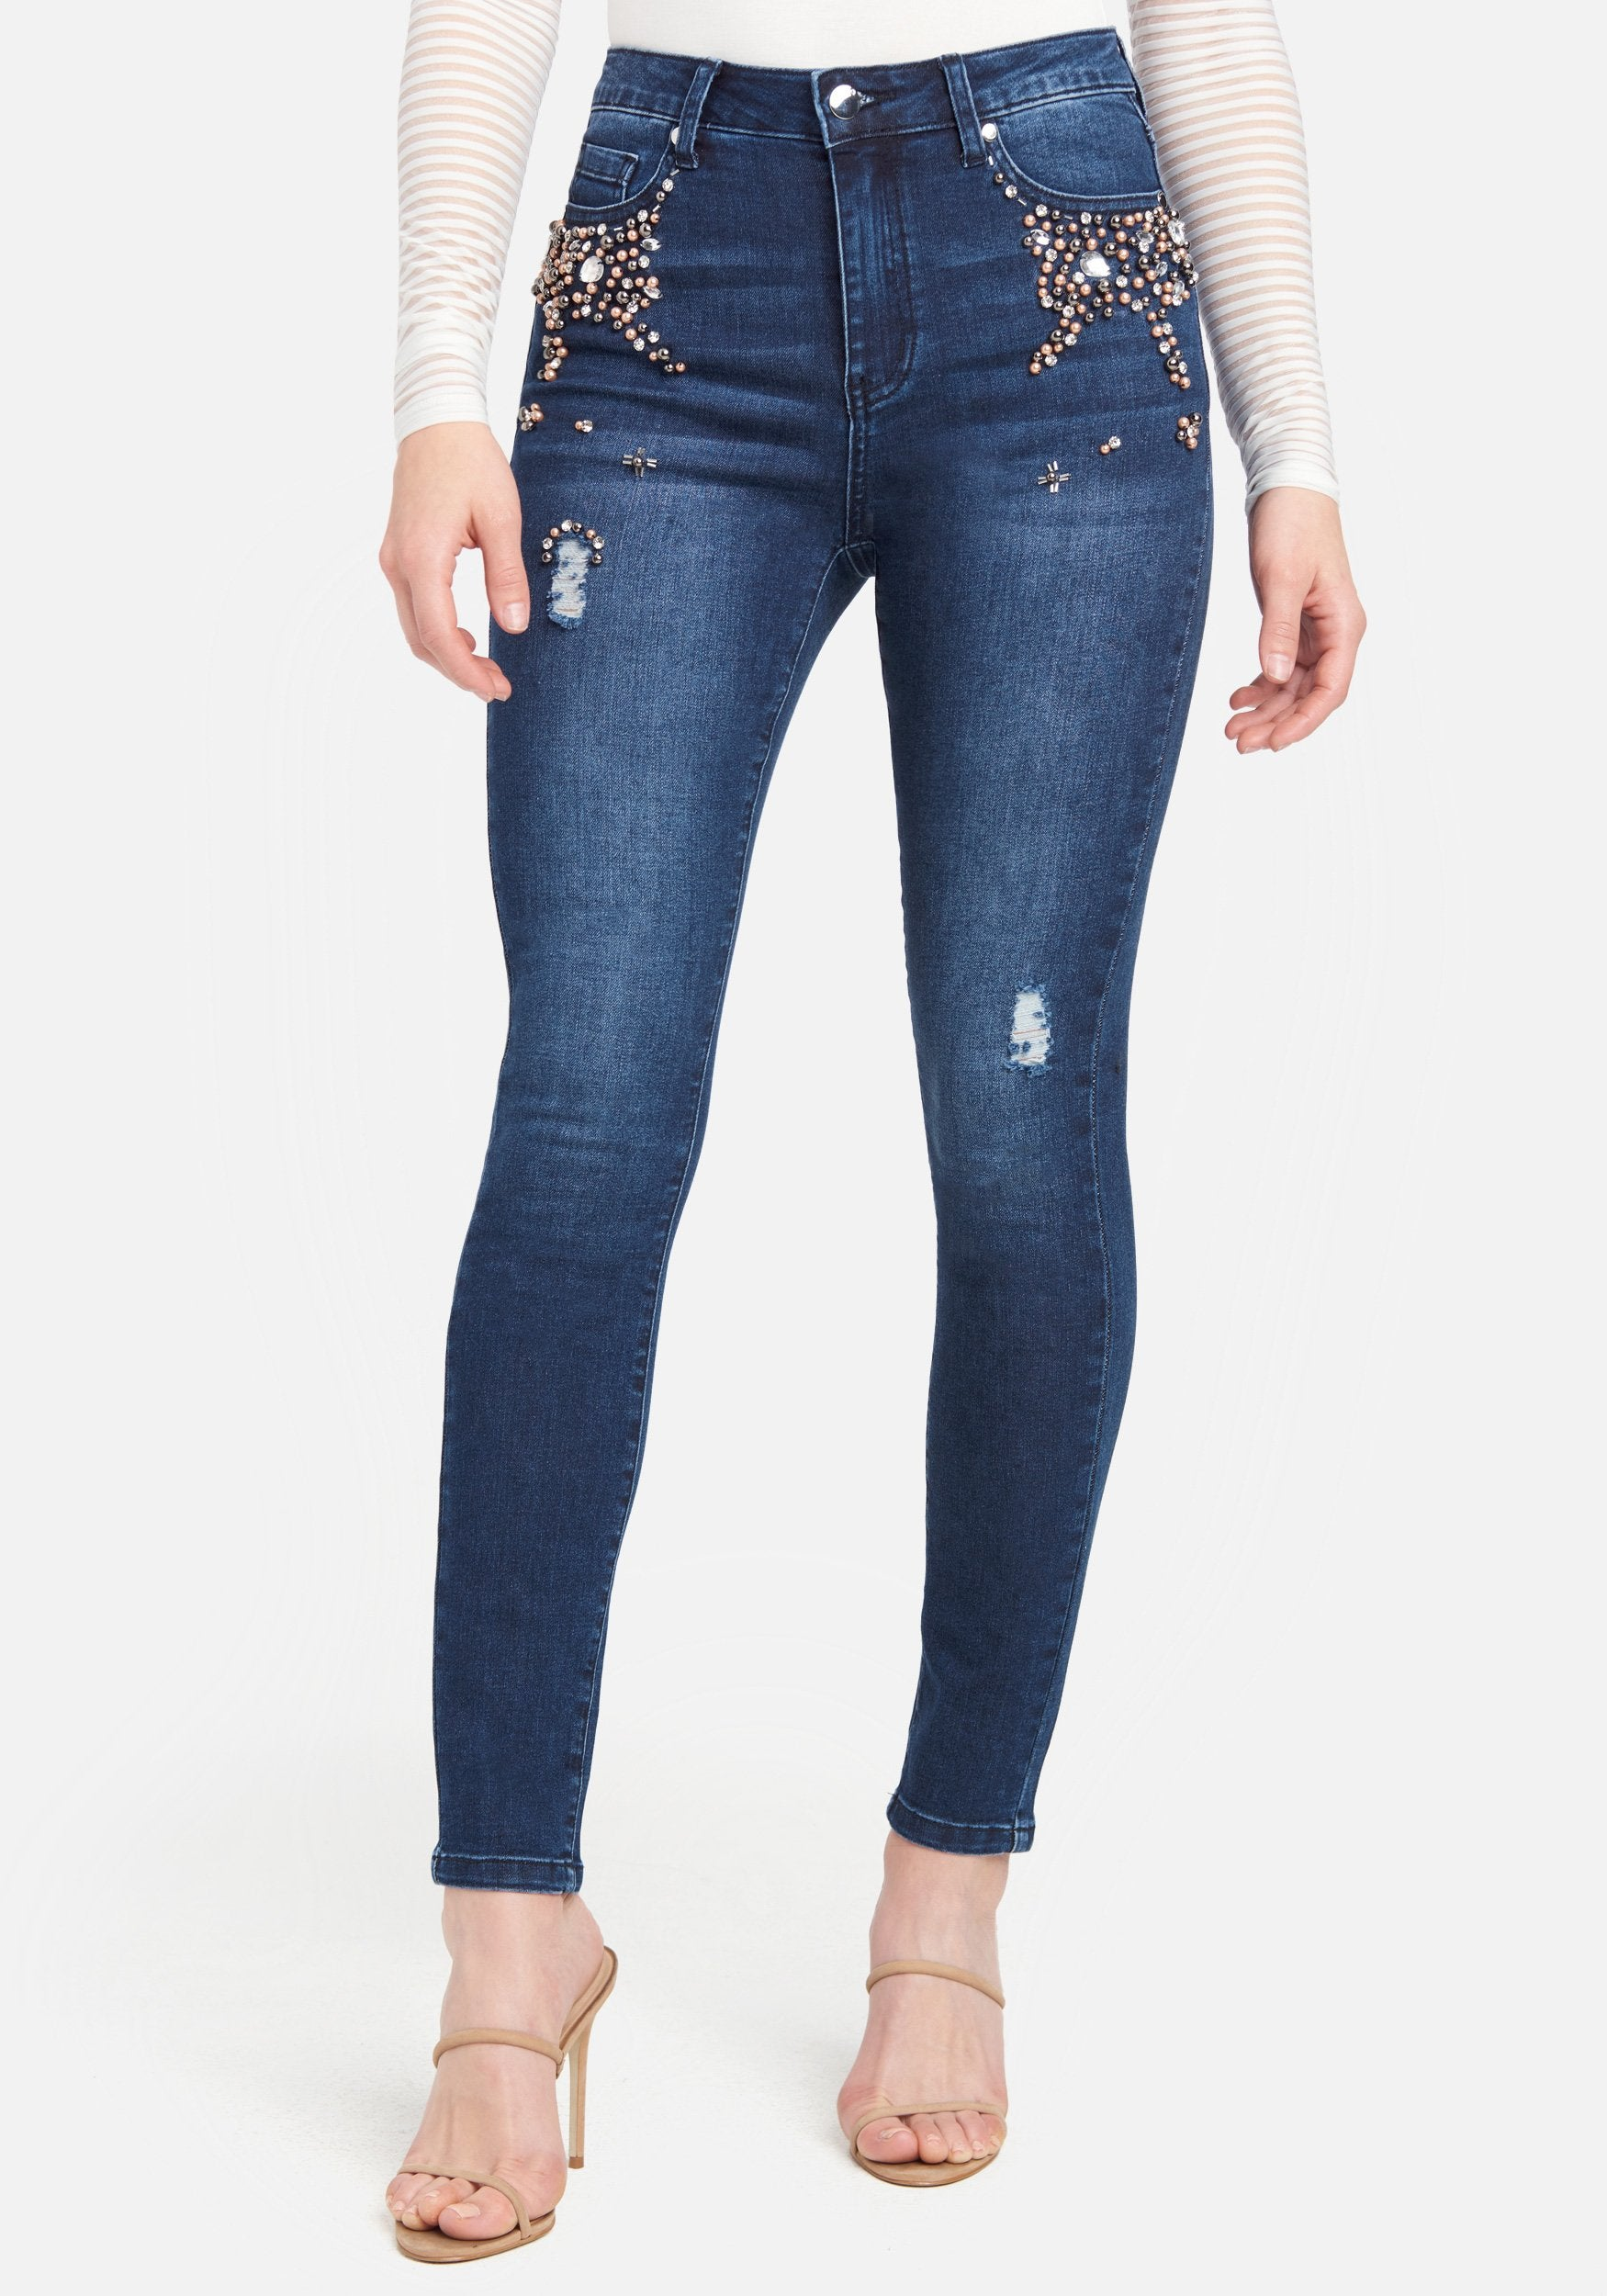 Bebe Women's Pearl And Rhinestone Skinny Jeans, Size 25 in Medium Indigo Wash Cotton/Spandex